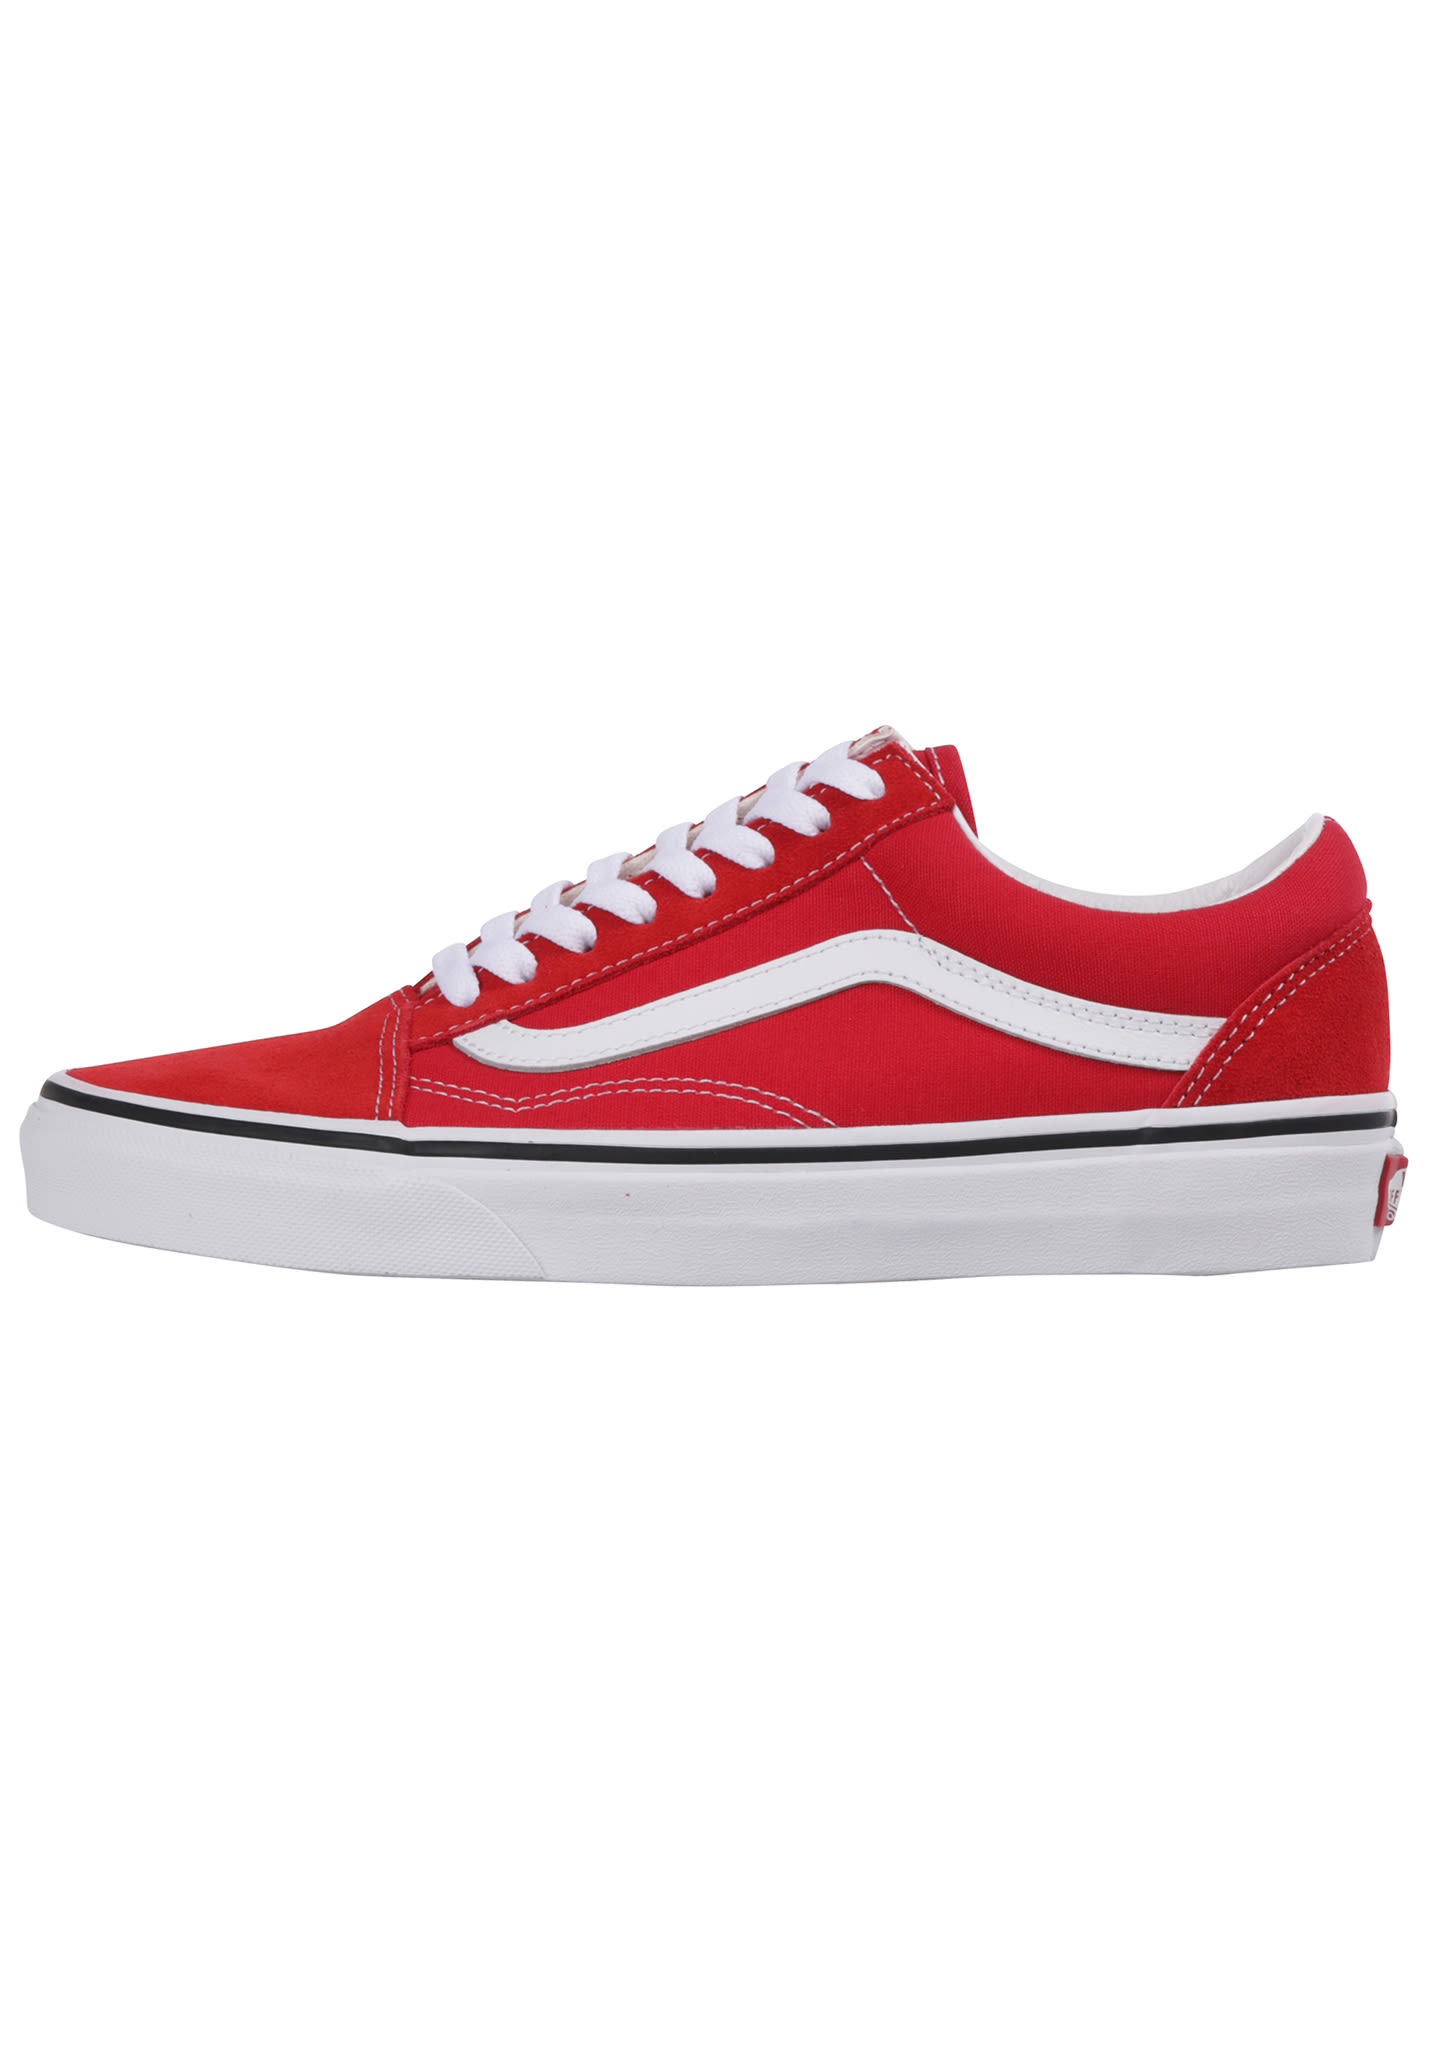 mejor servicio fd21d a9045 Vans Old Skool - Sneakers for Women - Red